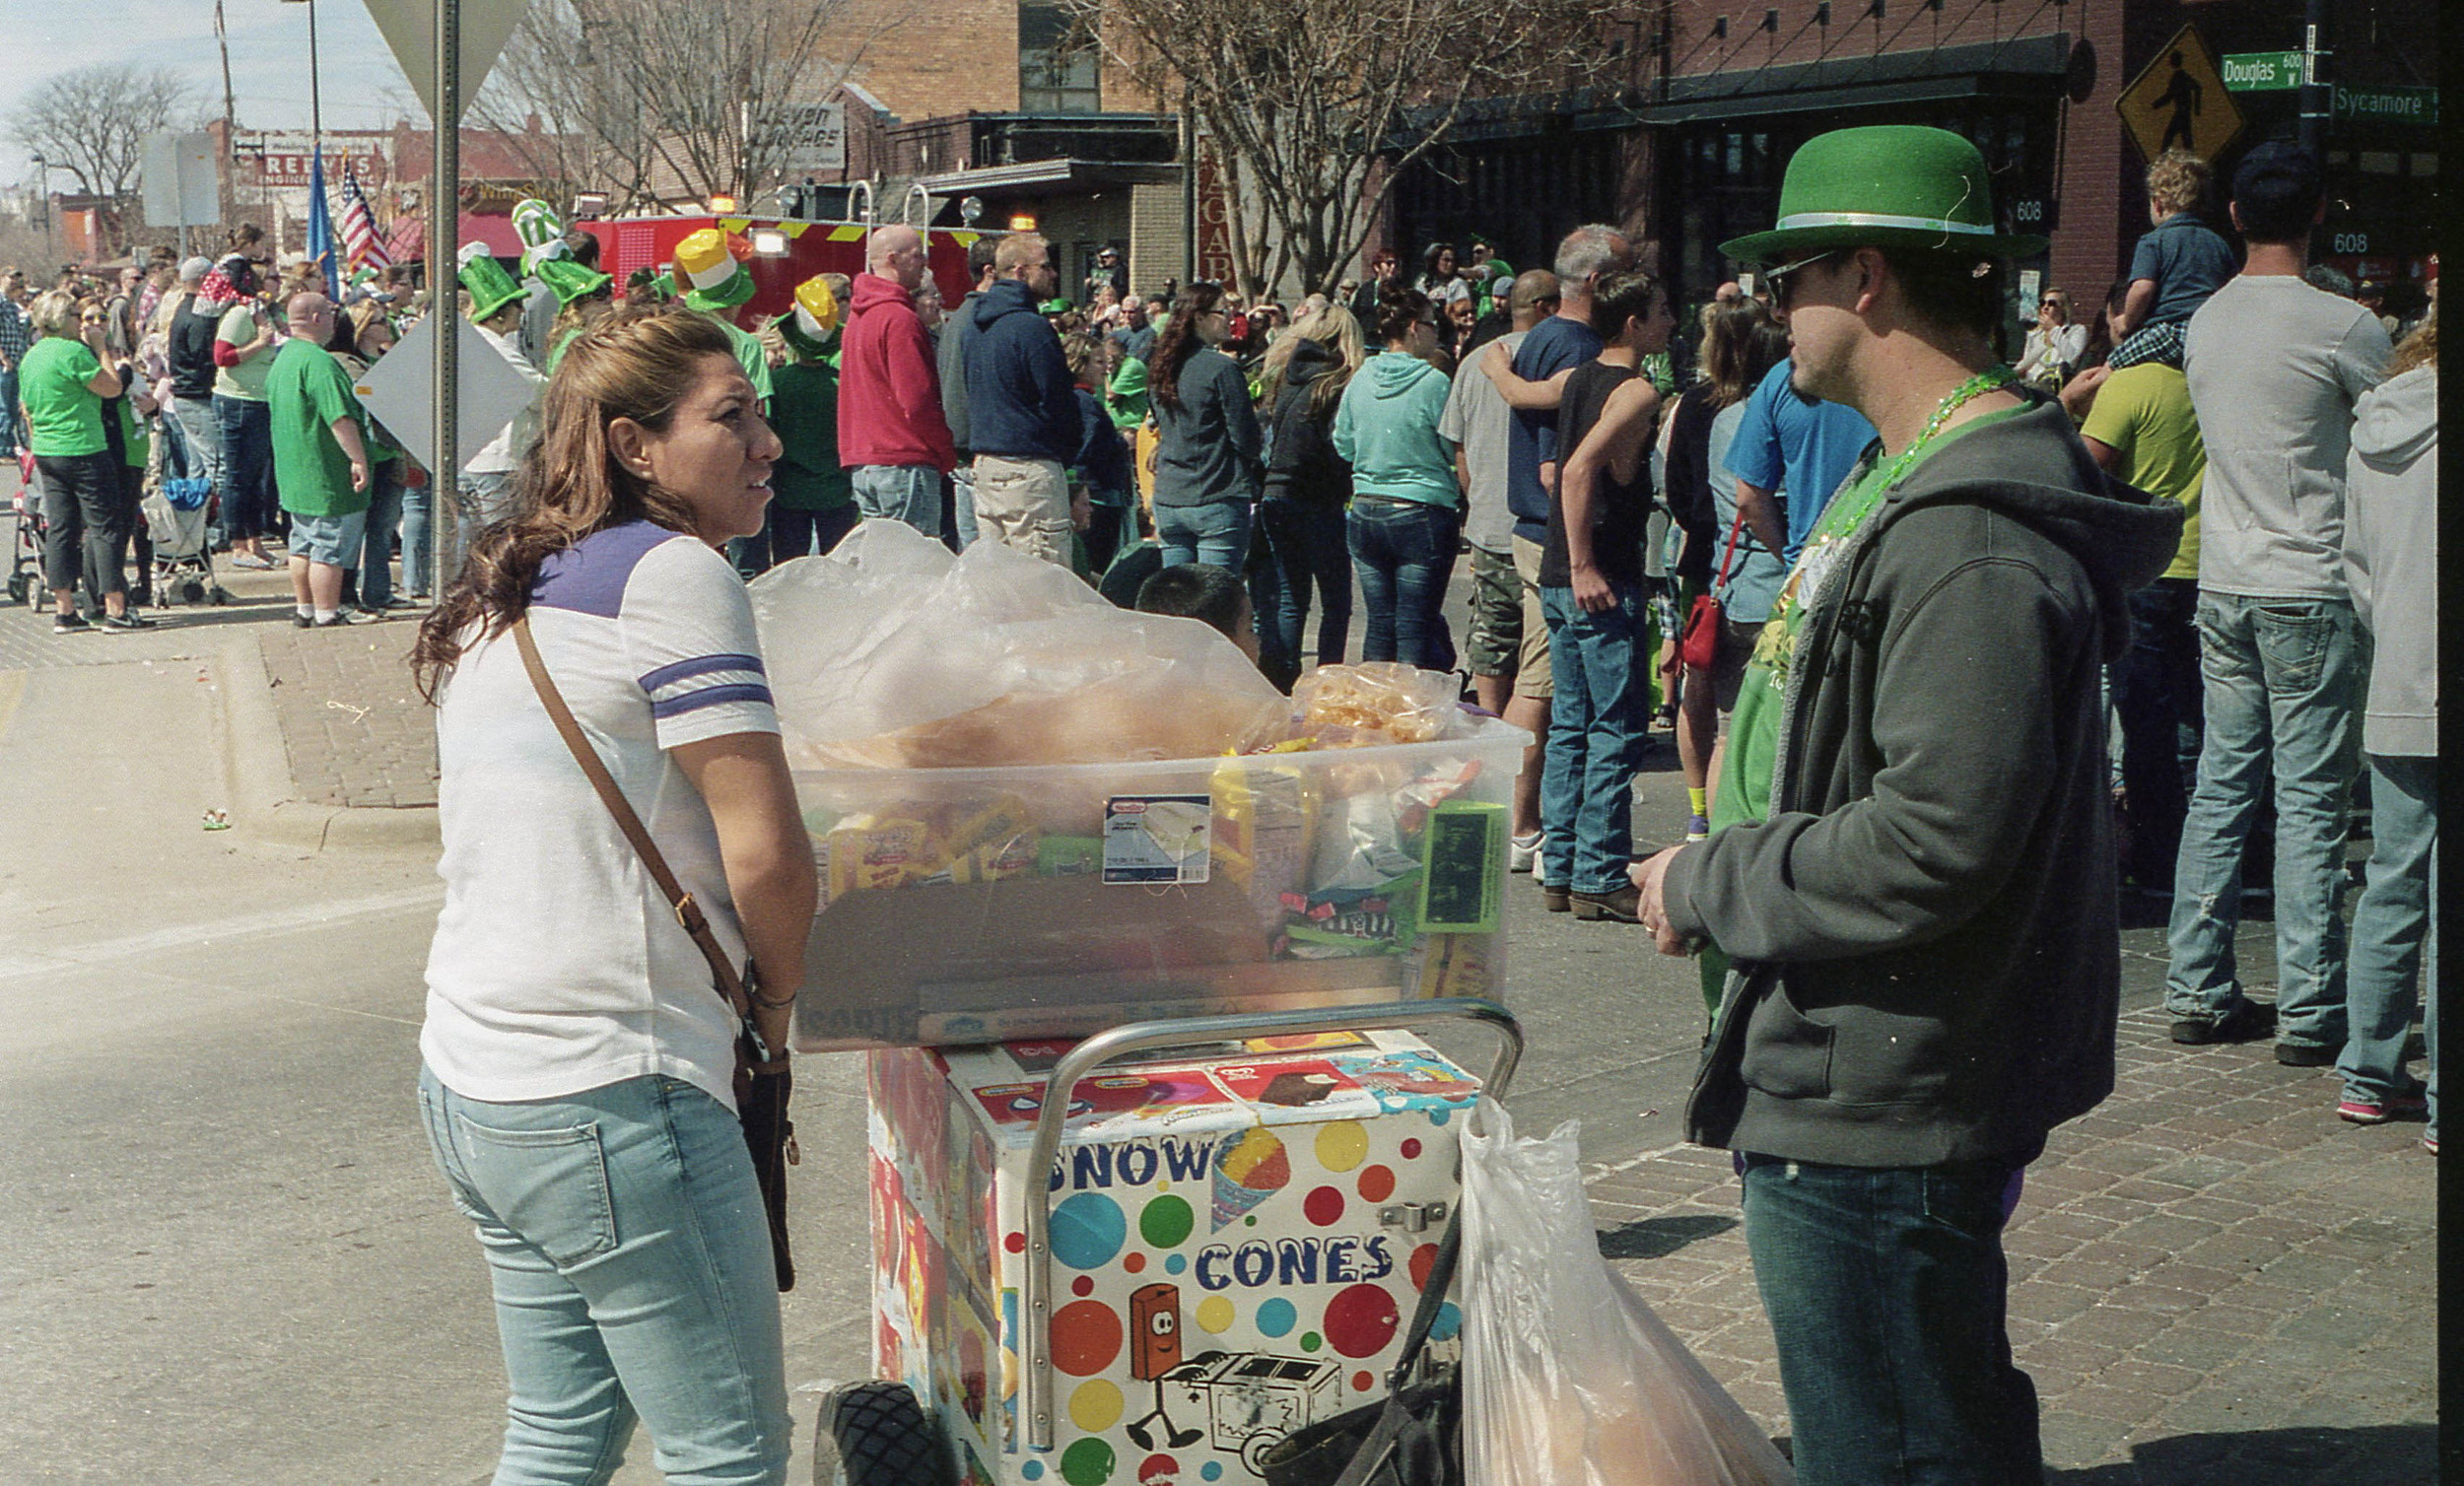 Of course the Mexican street vendors were all around the Irish themed parade.